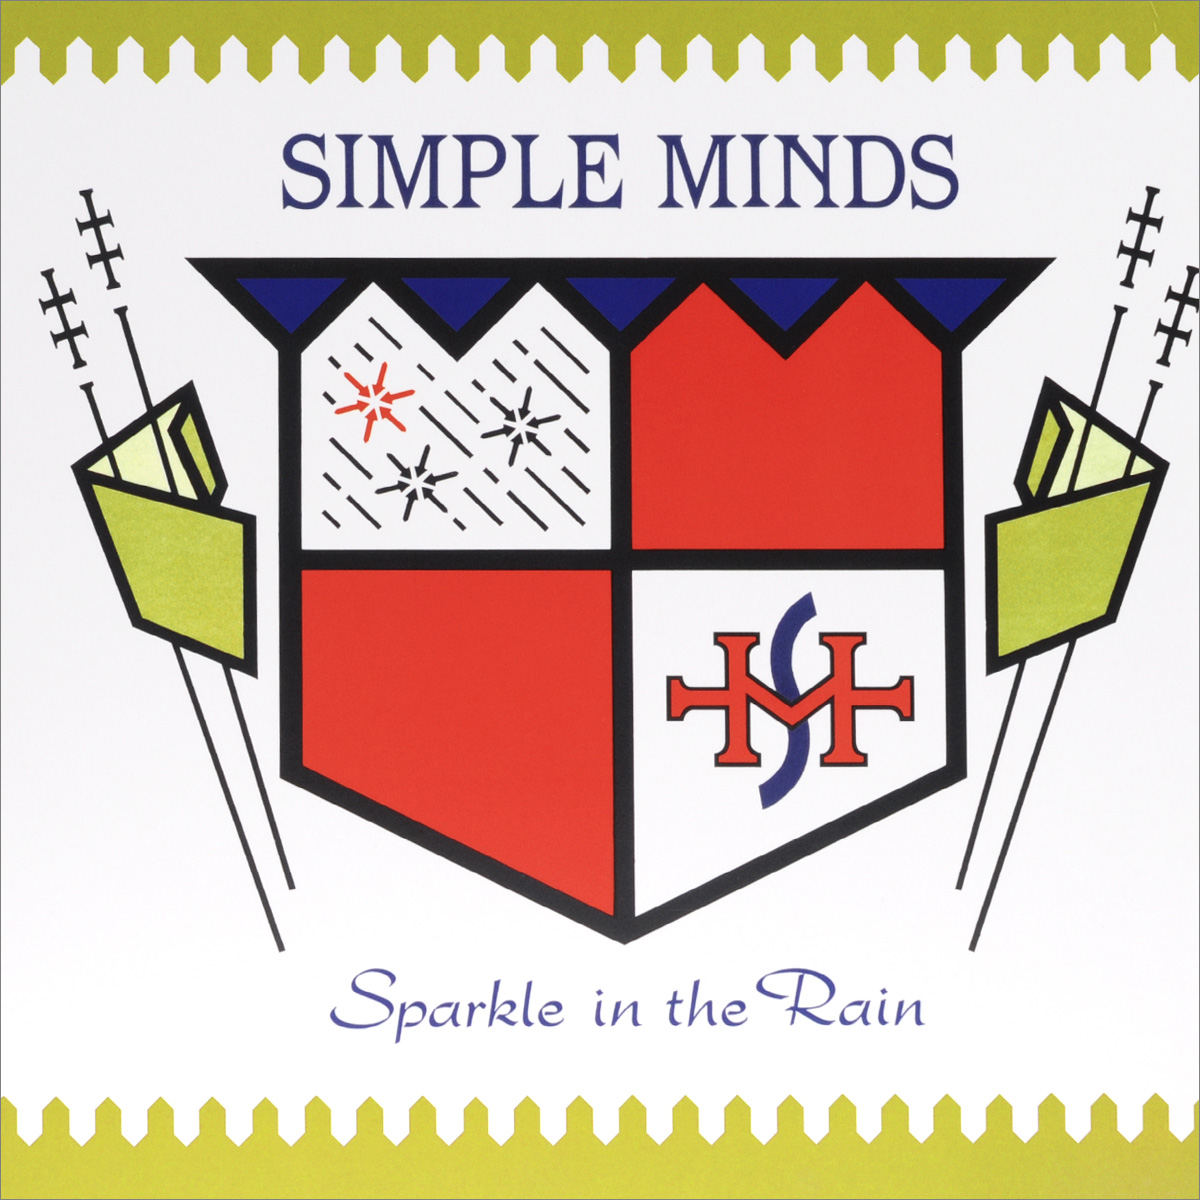 Simple Minds Simple Minds Sparkle In The Rain(LP) disado 24 frets inlay dots maple electric guitar neck maple fingerboard wood color black headstock guitar accessories parts